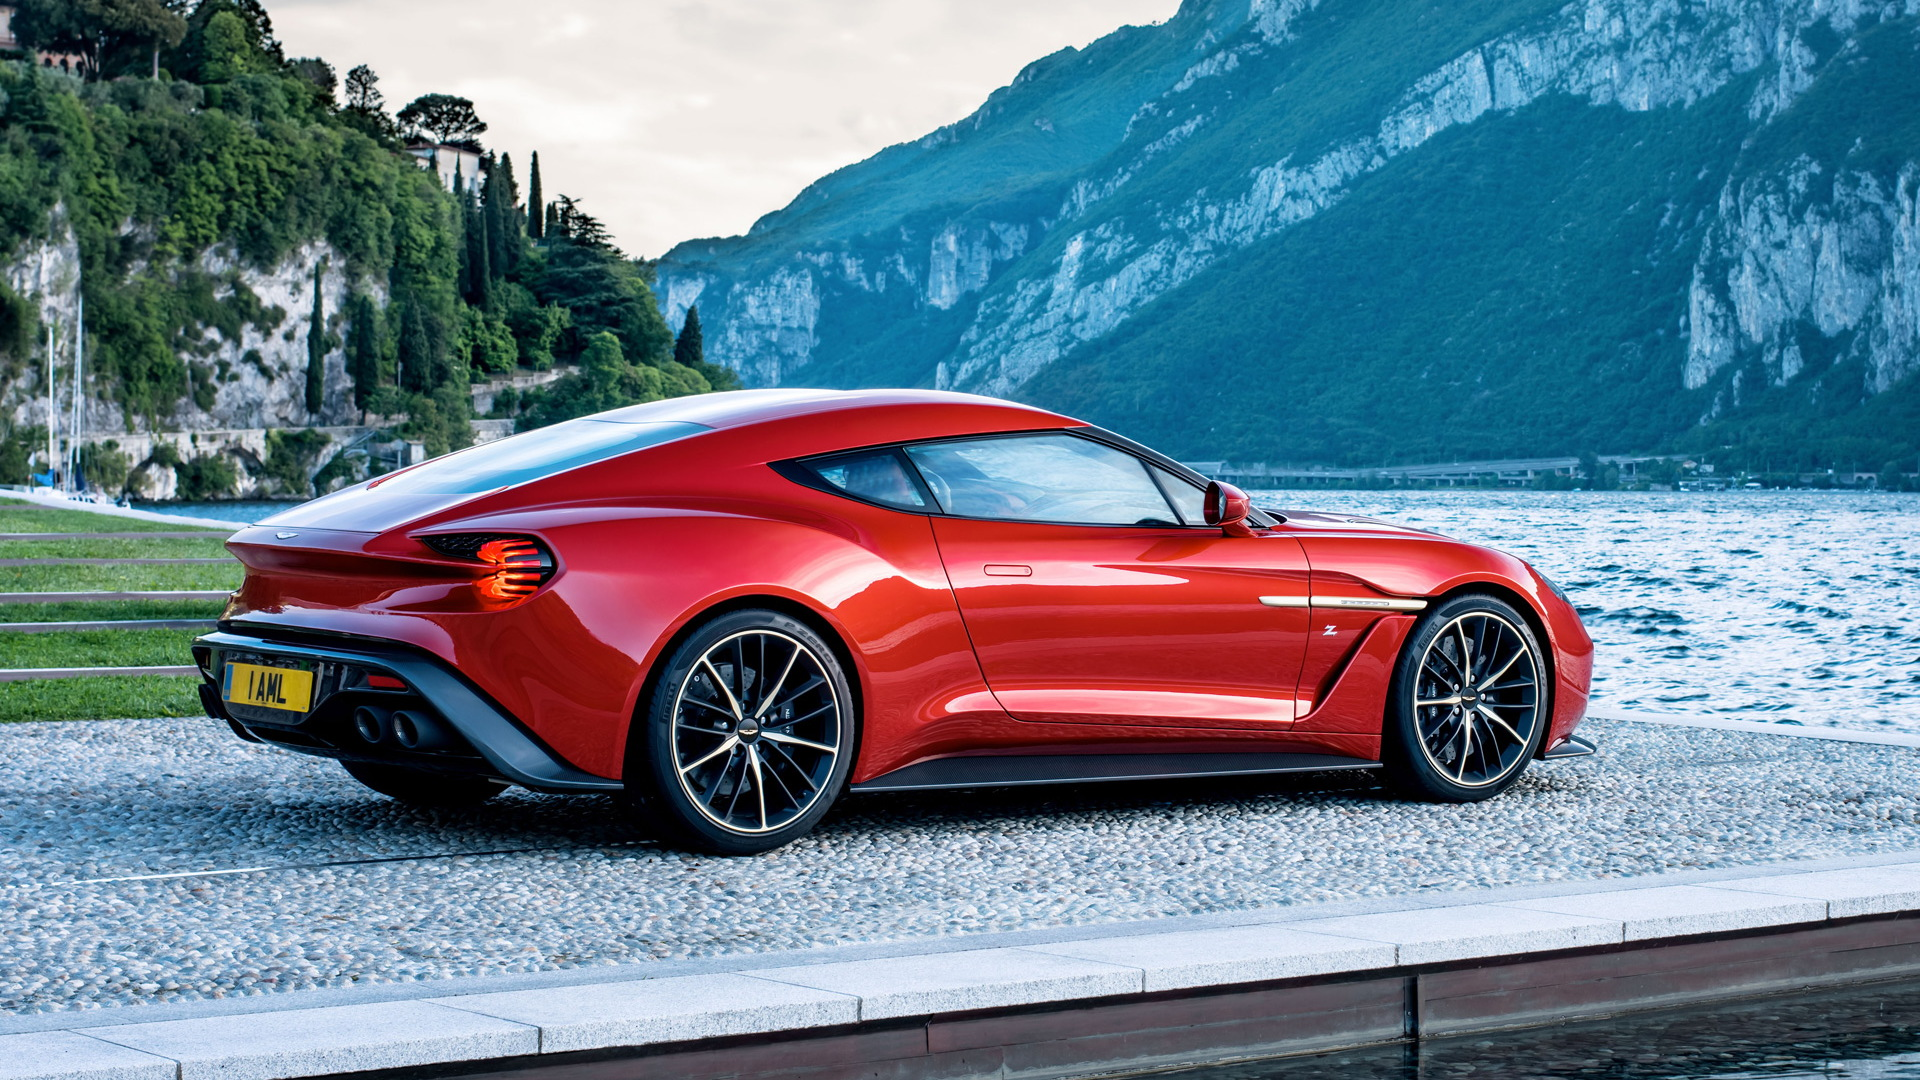 Someone Bought All 4 Aston Martin Vanquish Zagato Body Styles